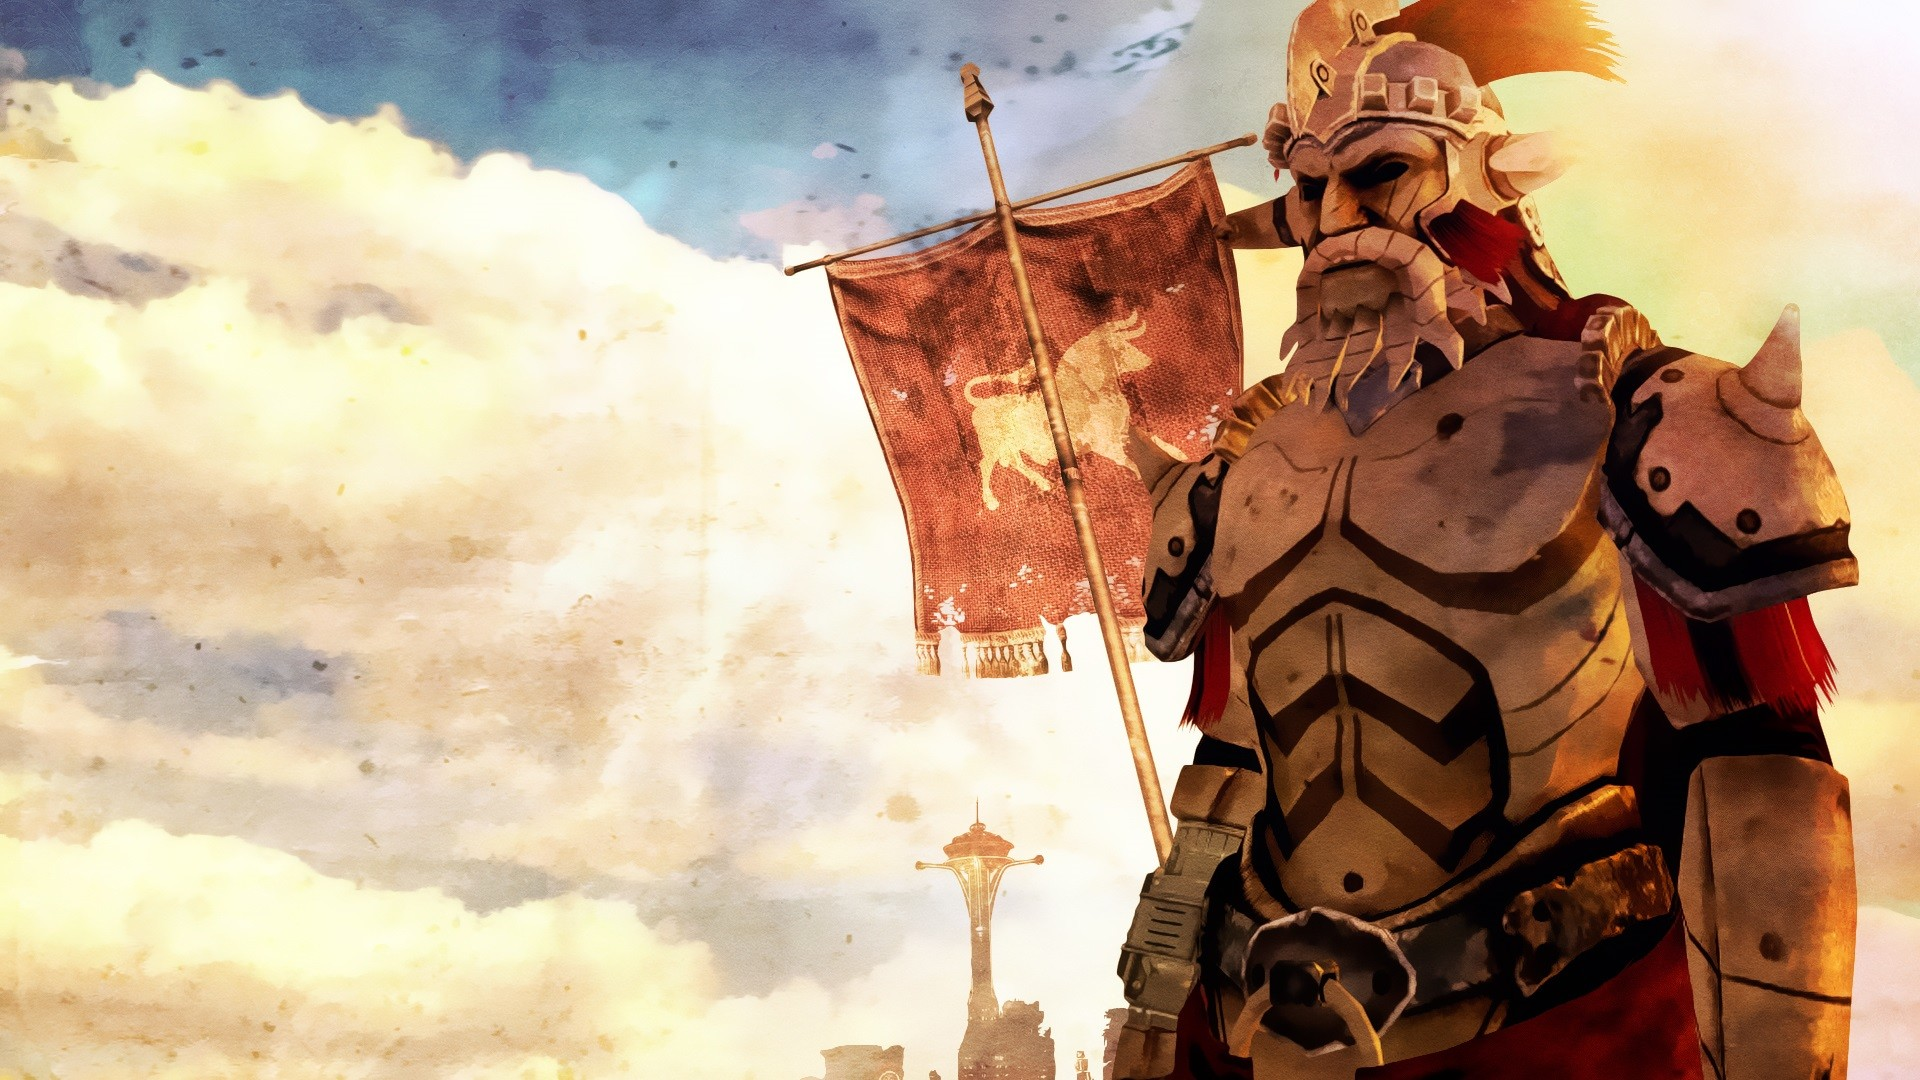 Collection Fallout (Video Games) Video Game Fallout: New Vegas 406748 .